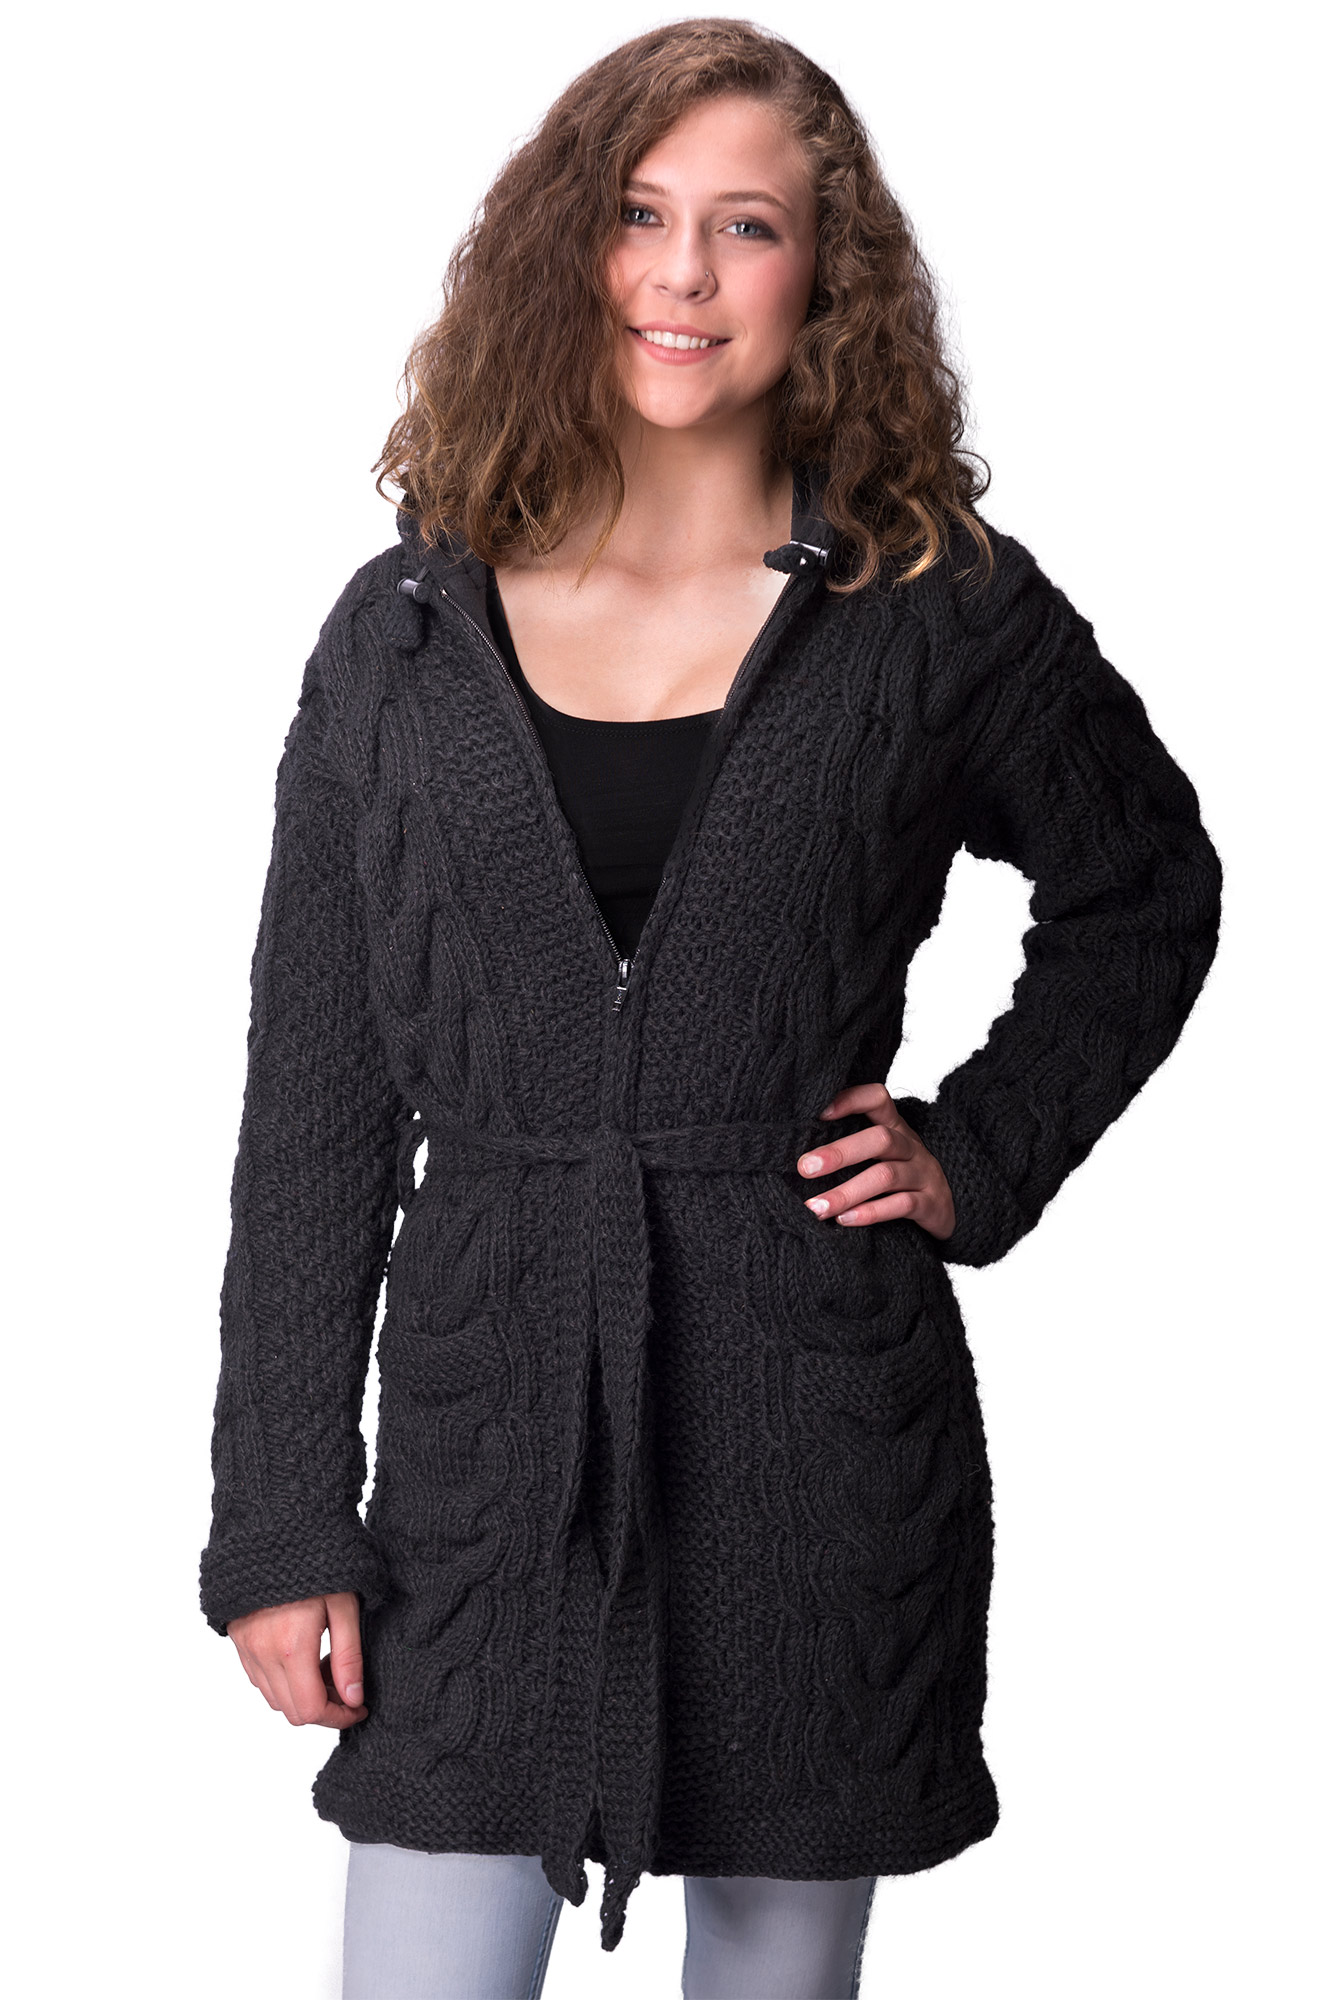 Full Length, Black Cable Knit